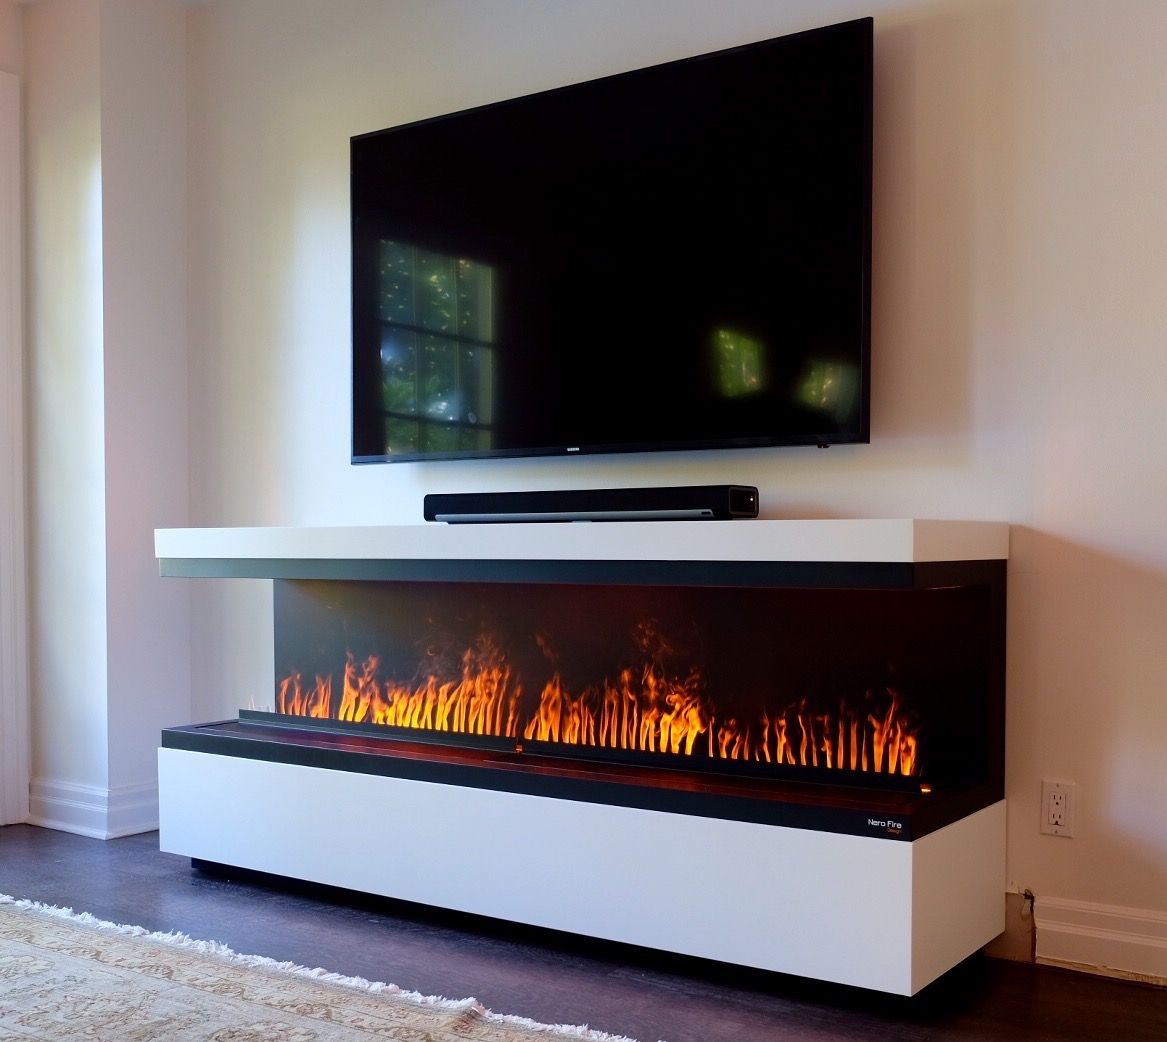 Fireplace with TV above Water Vapor Technology OptiMyst by Dimplex Handmade Cabi  Electric